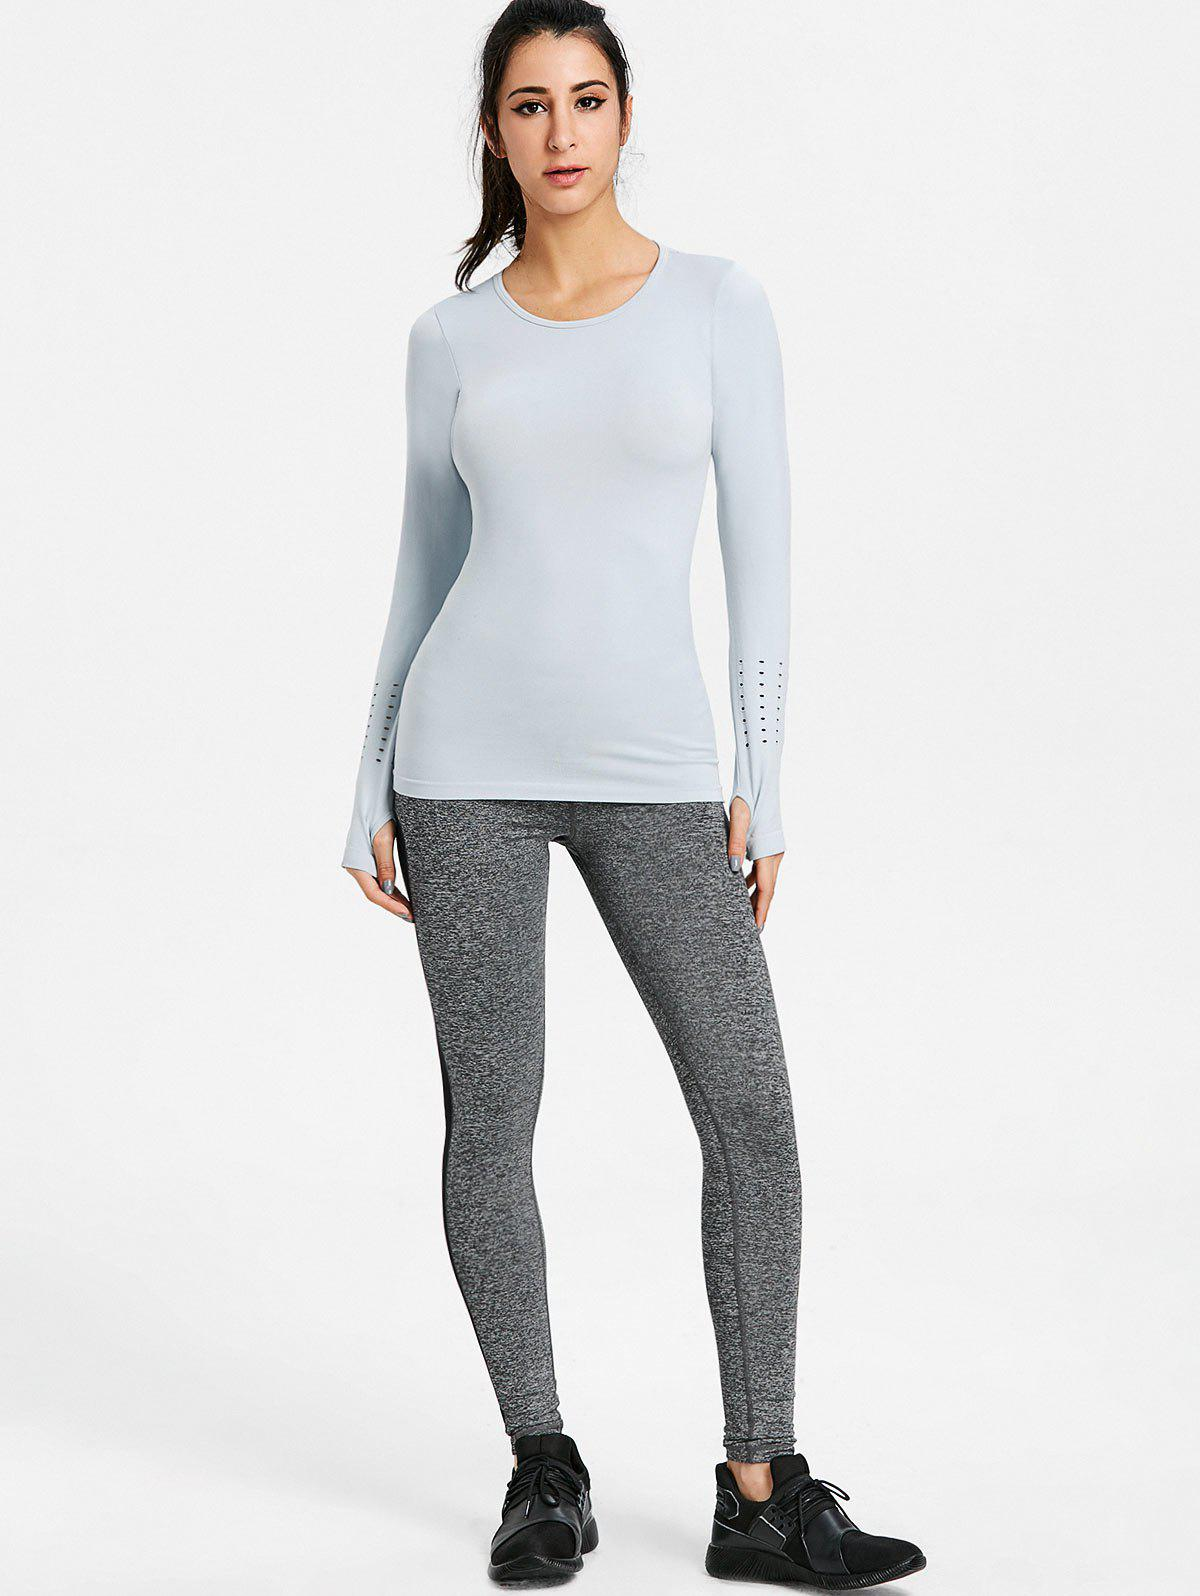 Sports Skinny Breathable Long Sleeve T-shirt - GRAY M